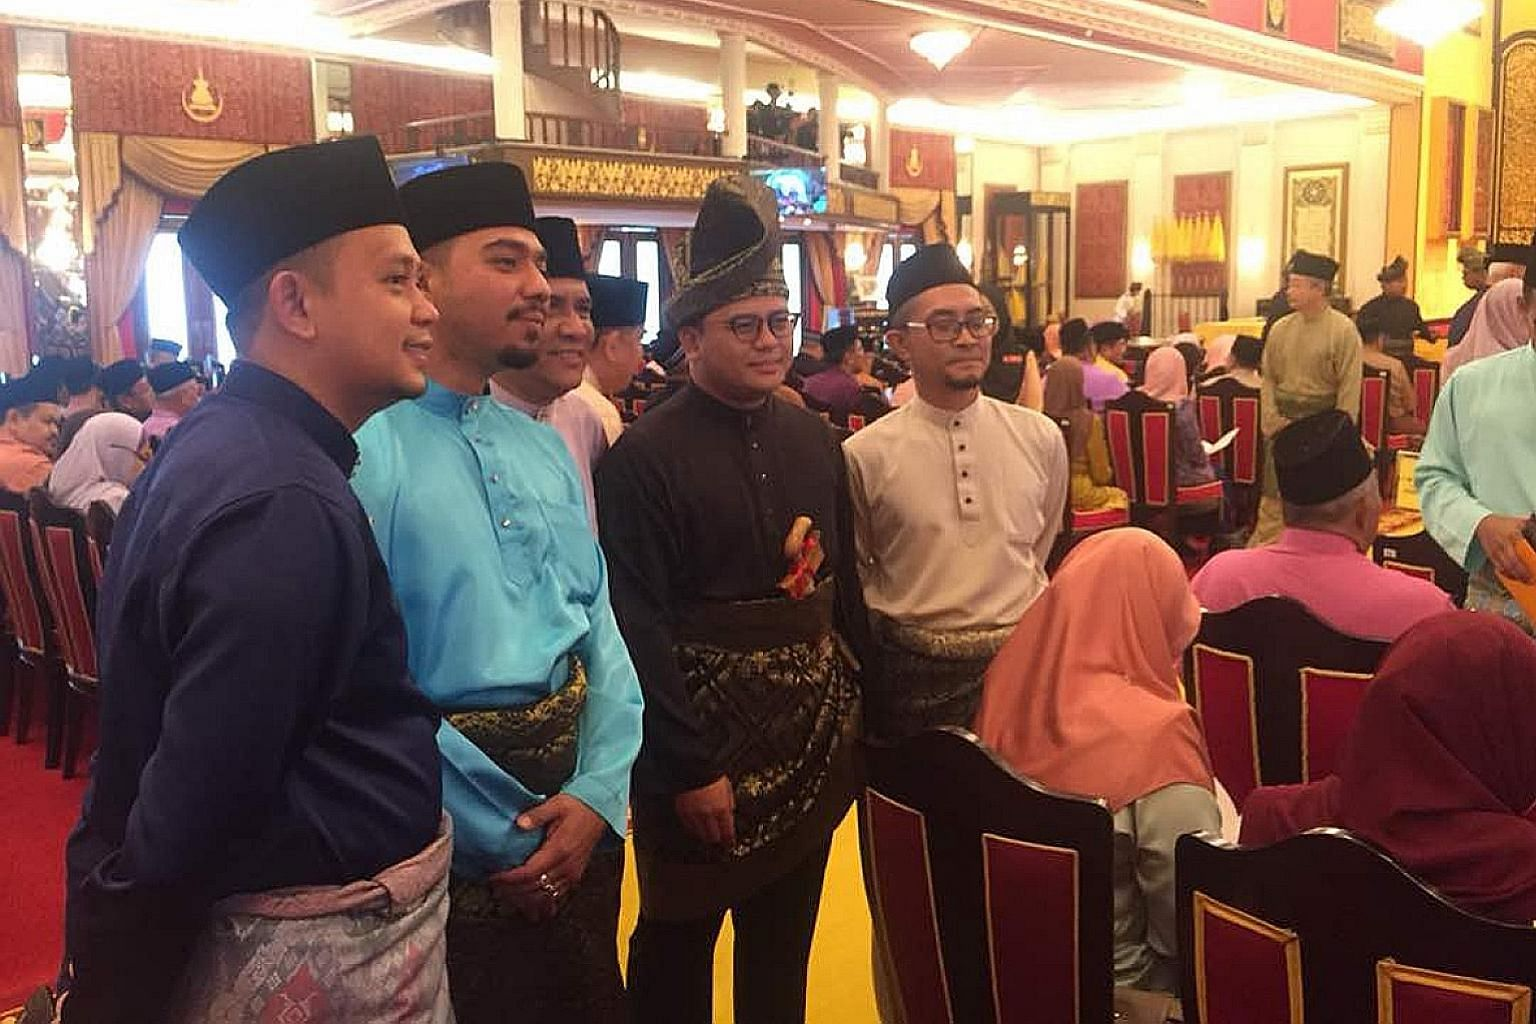 Mr Amirudin Shari (second from right), who counts Parti Keadilan Rakyat deputy president Azmin Ali as his mentor, was sworn in as Selangor's new chief minister despite intense lobbying for another candidate by those aligned to the party's de facto le